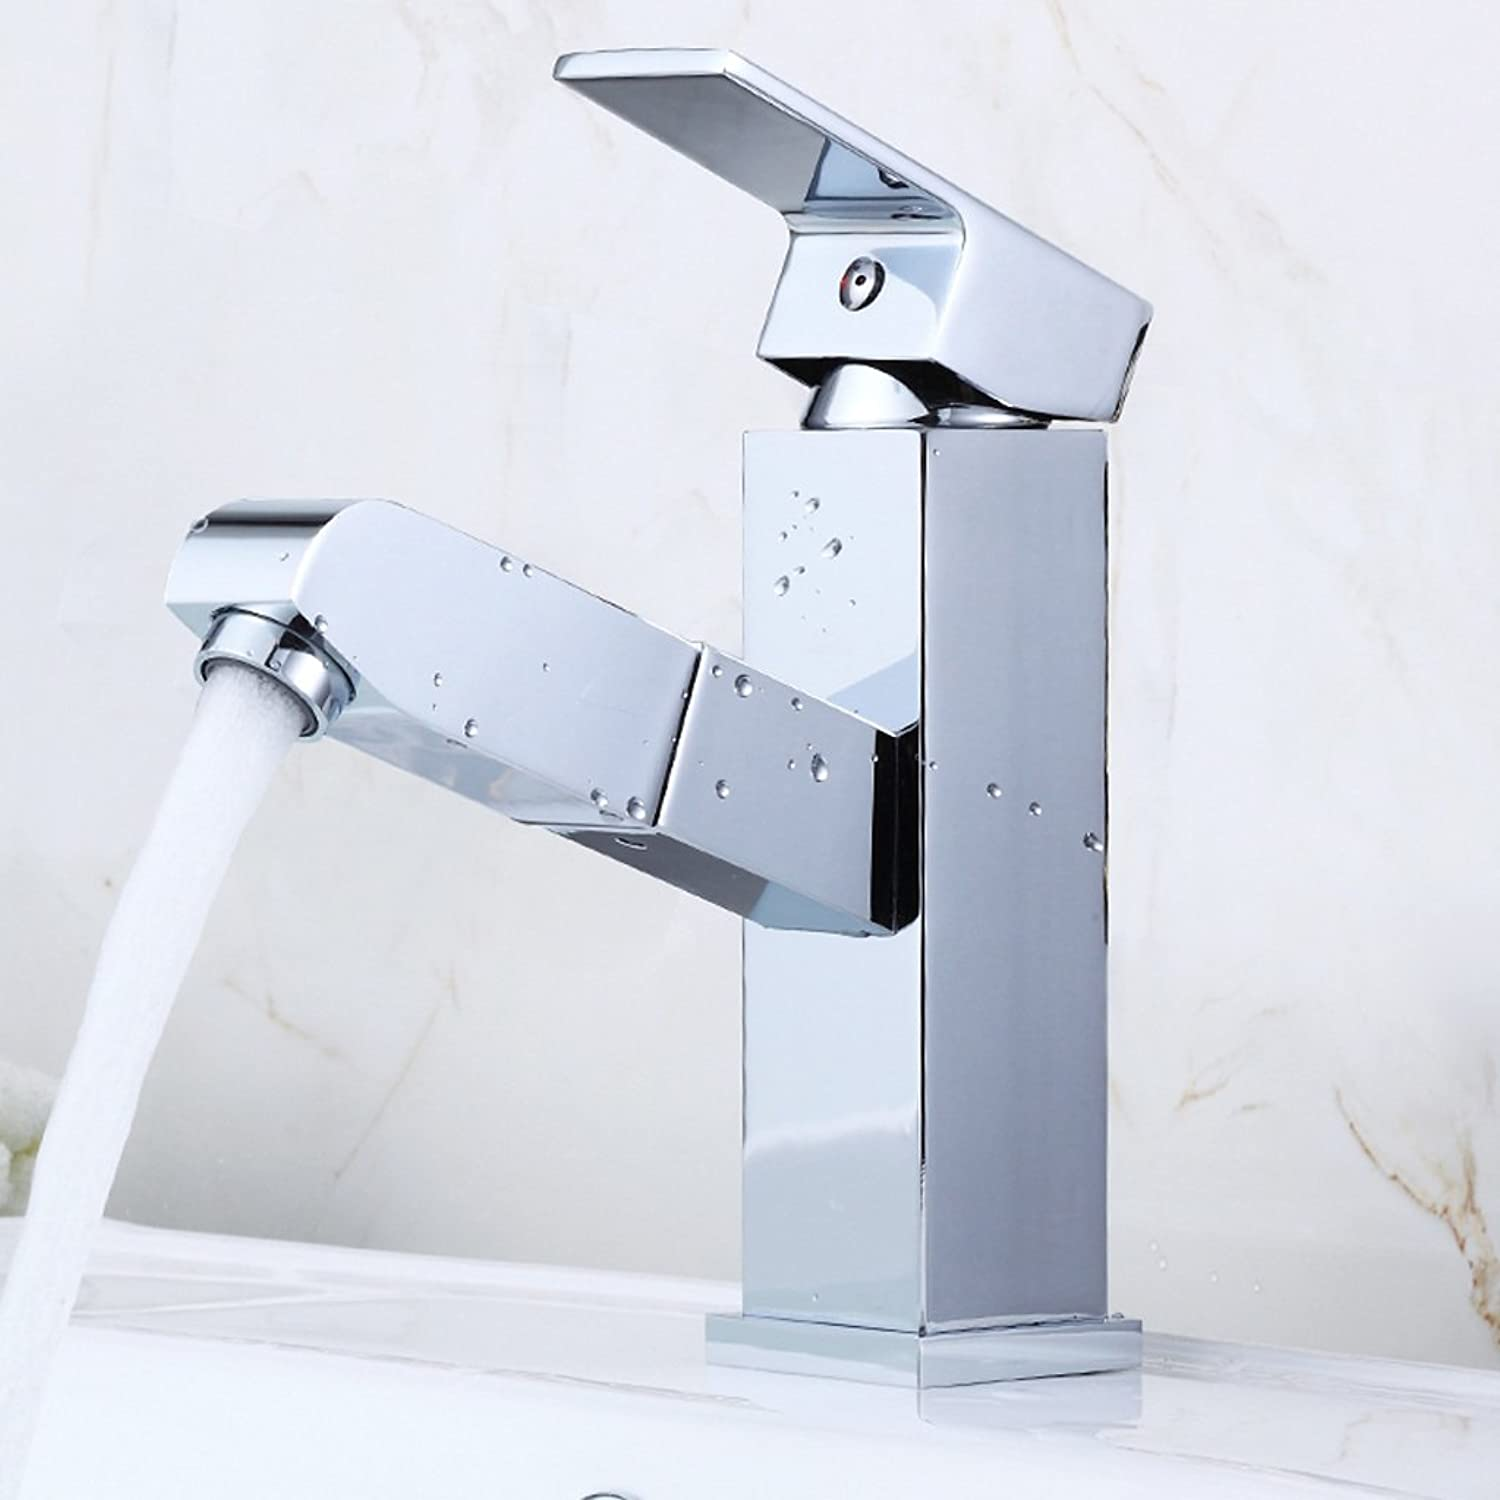 DLewiee All Copper Faucet Hot And Cold Basin Taps Bathroom Basin Wash Basin Dragon Universal redation May Pull-Out Faucet